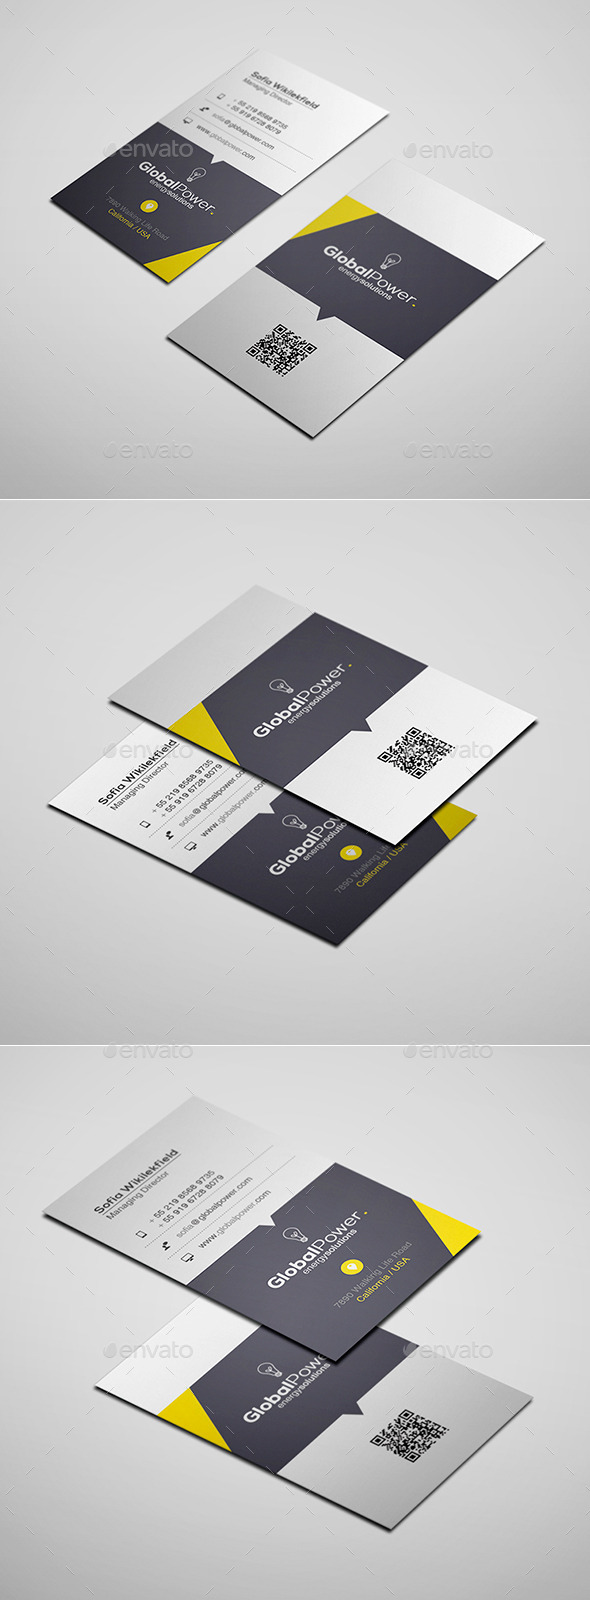 GraphicRiver Business Card Vol 04 11447388